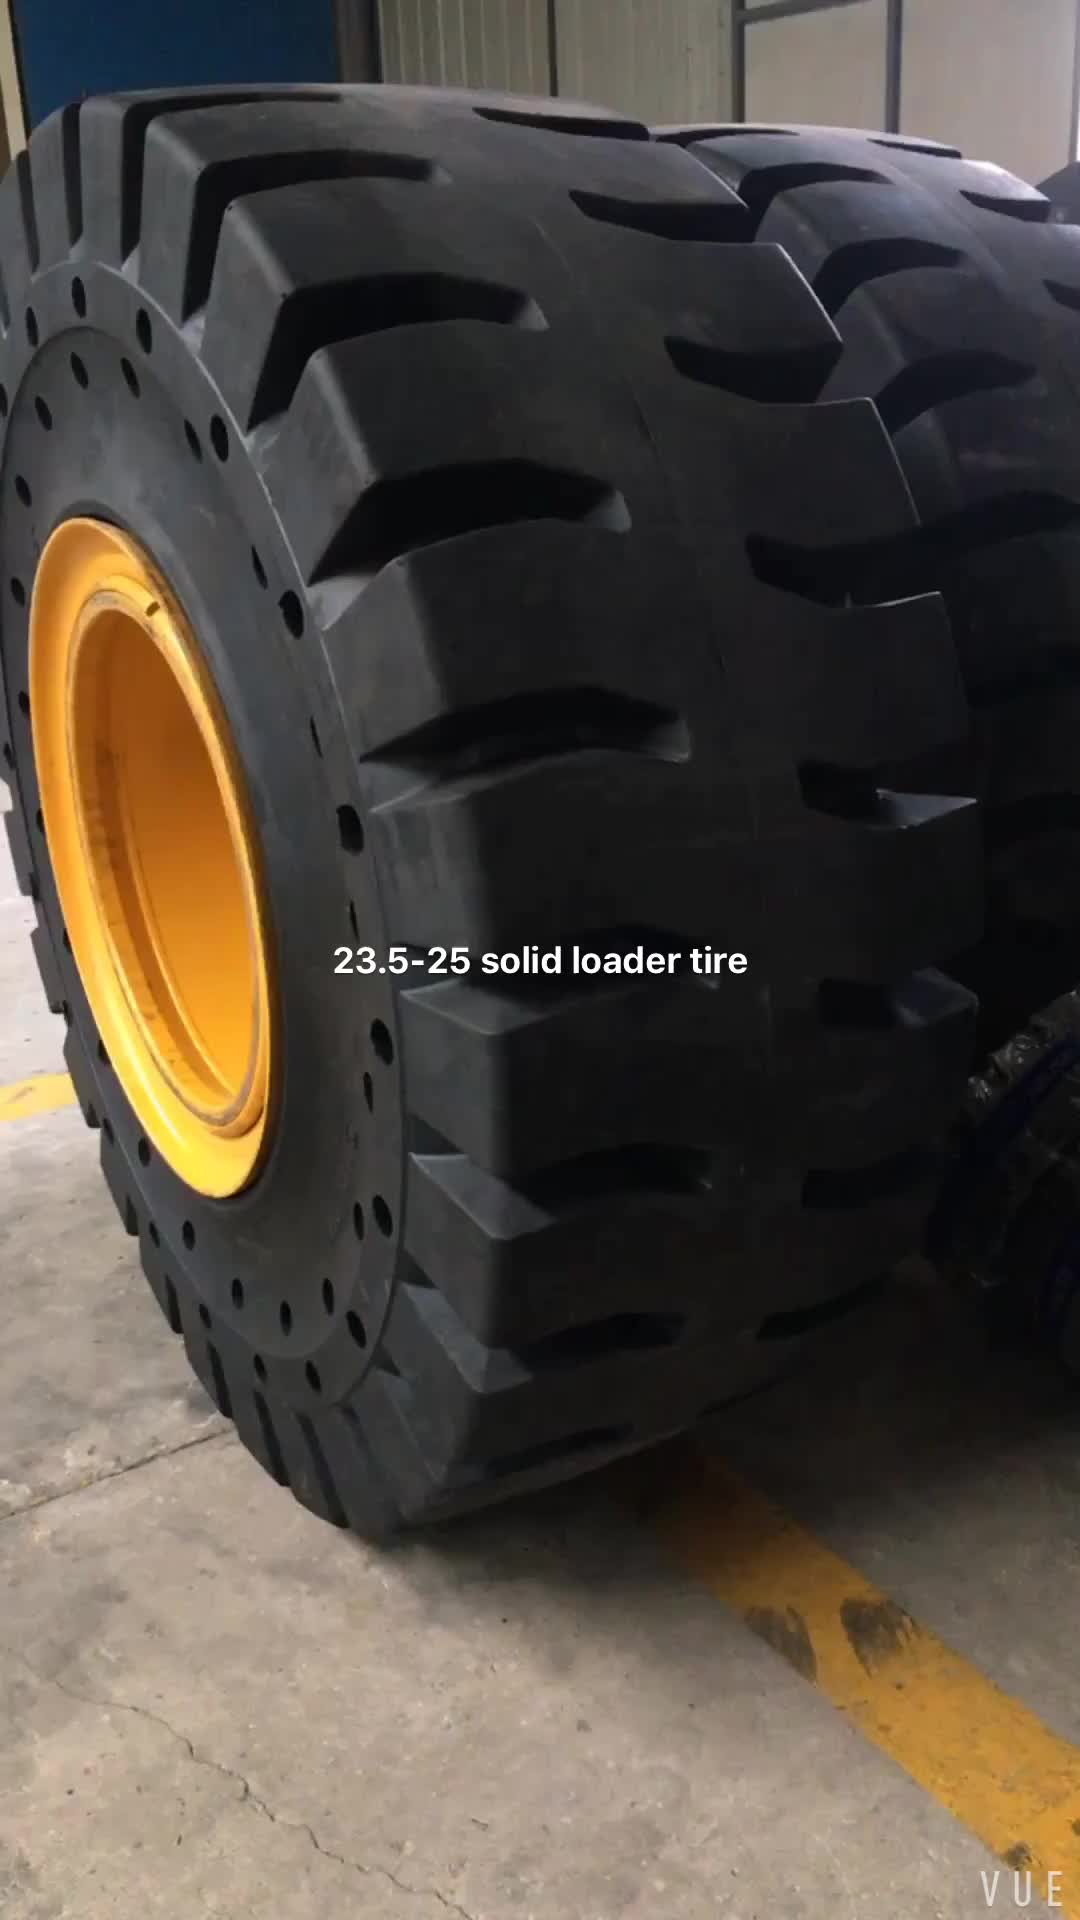 Chinese good quality solid tire 23.5-25 loader tire for sale